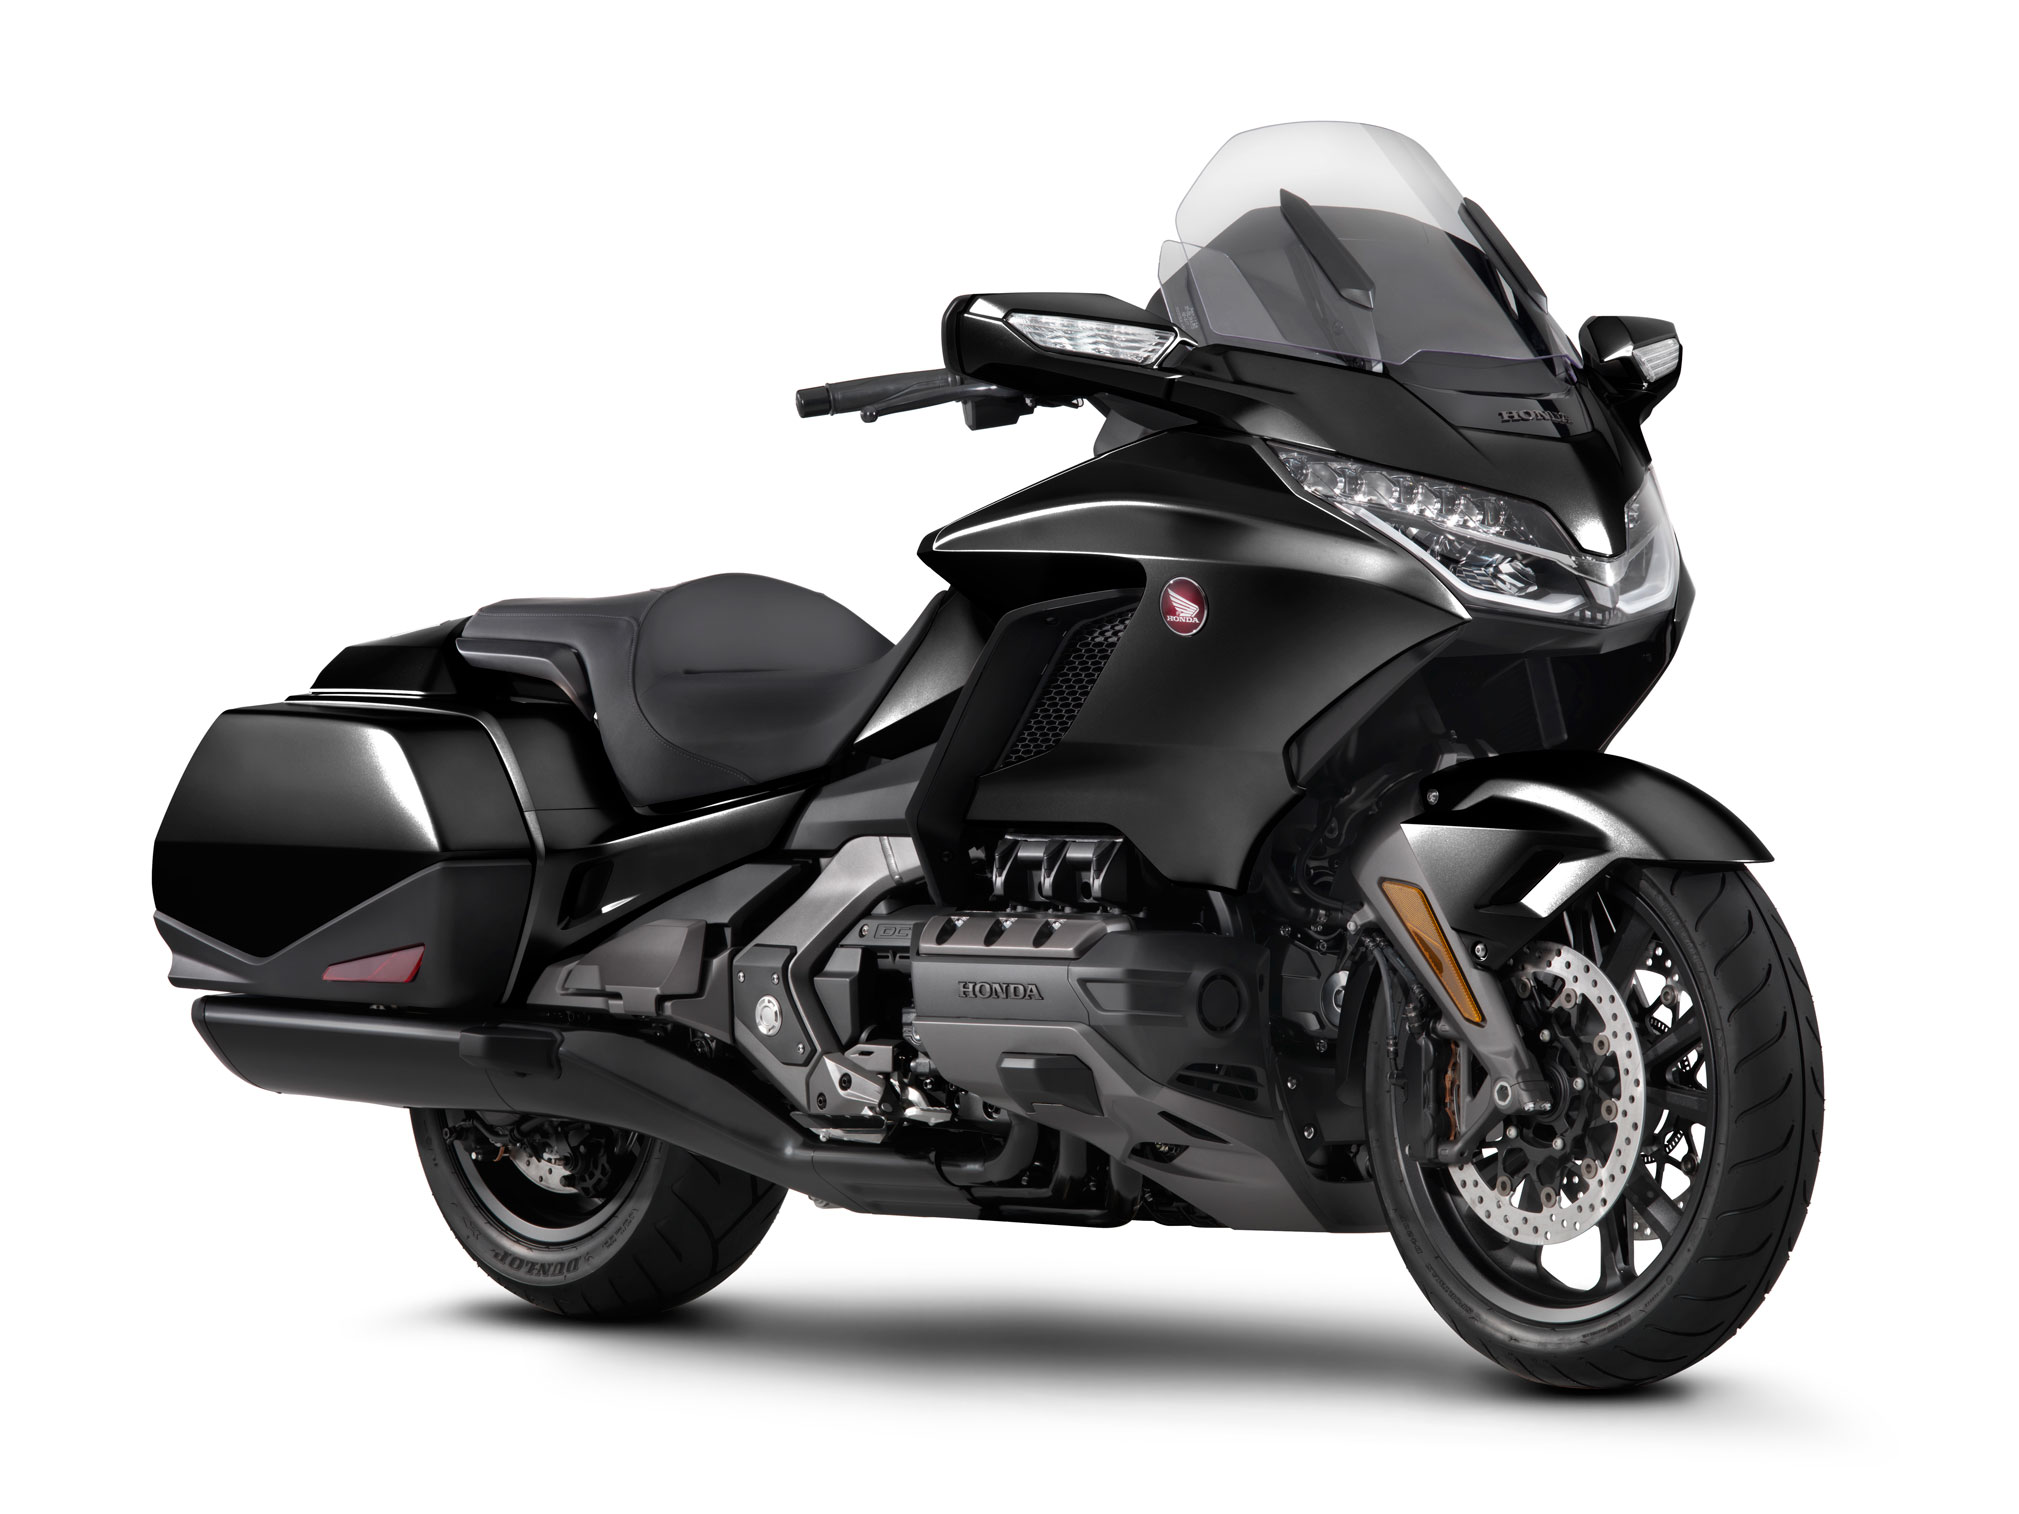 49 The Best 2020 Honda Gold Wing Interior